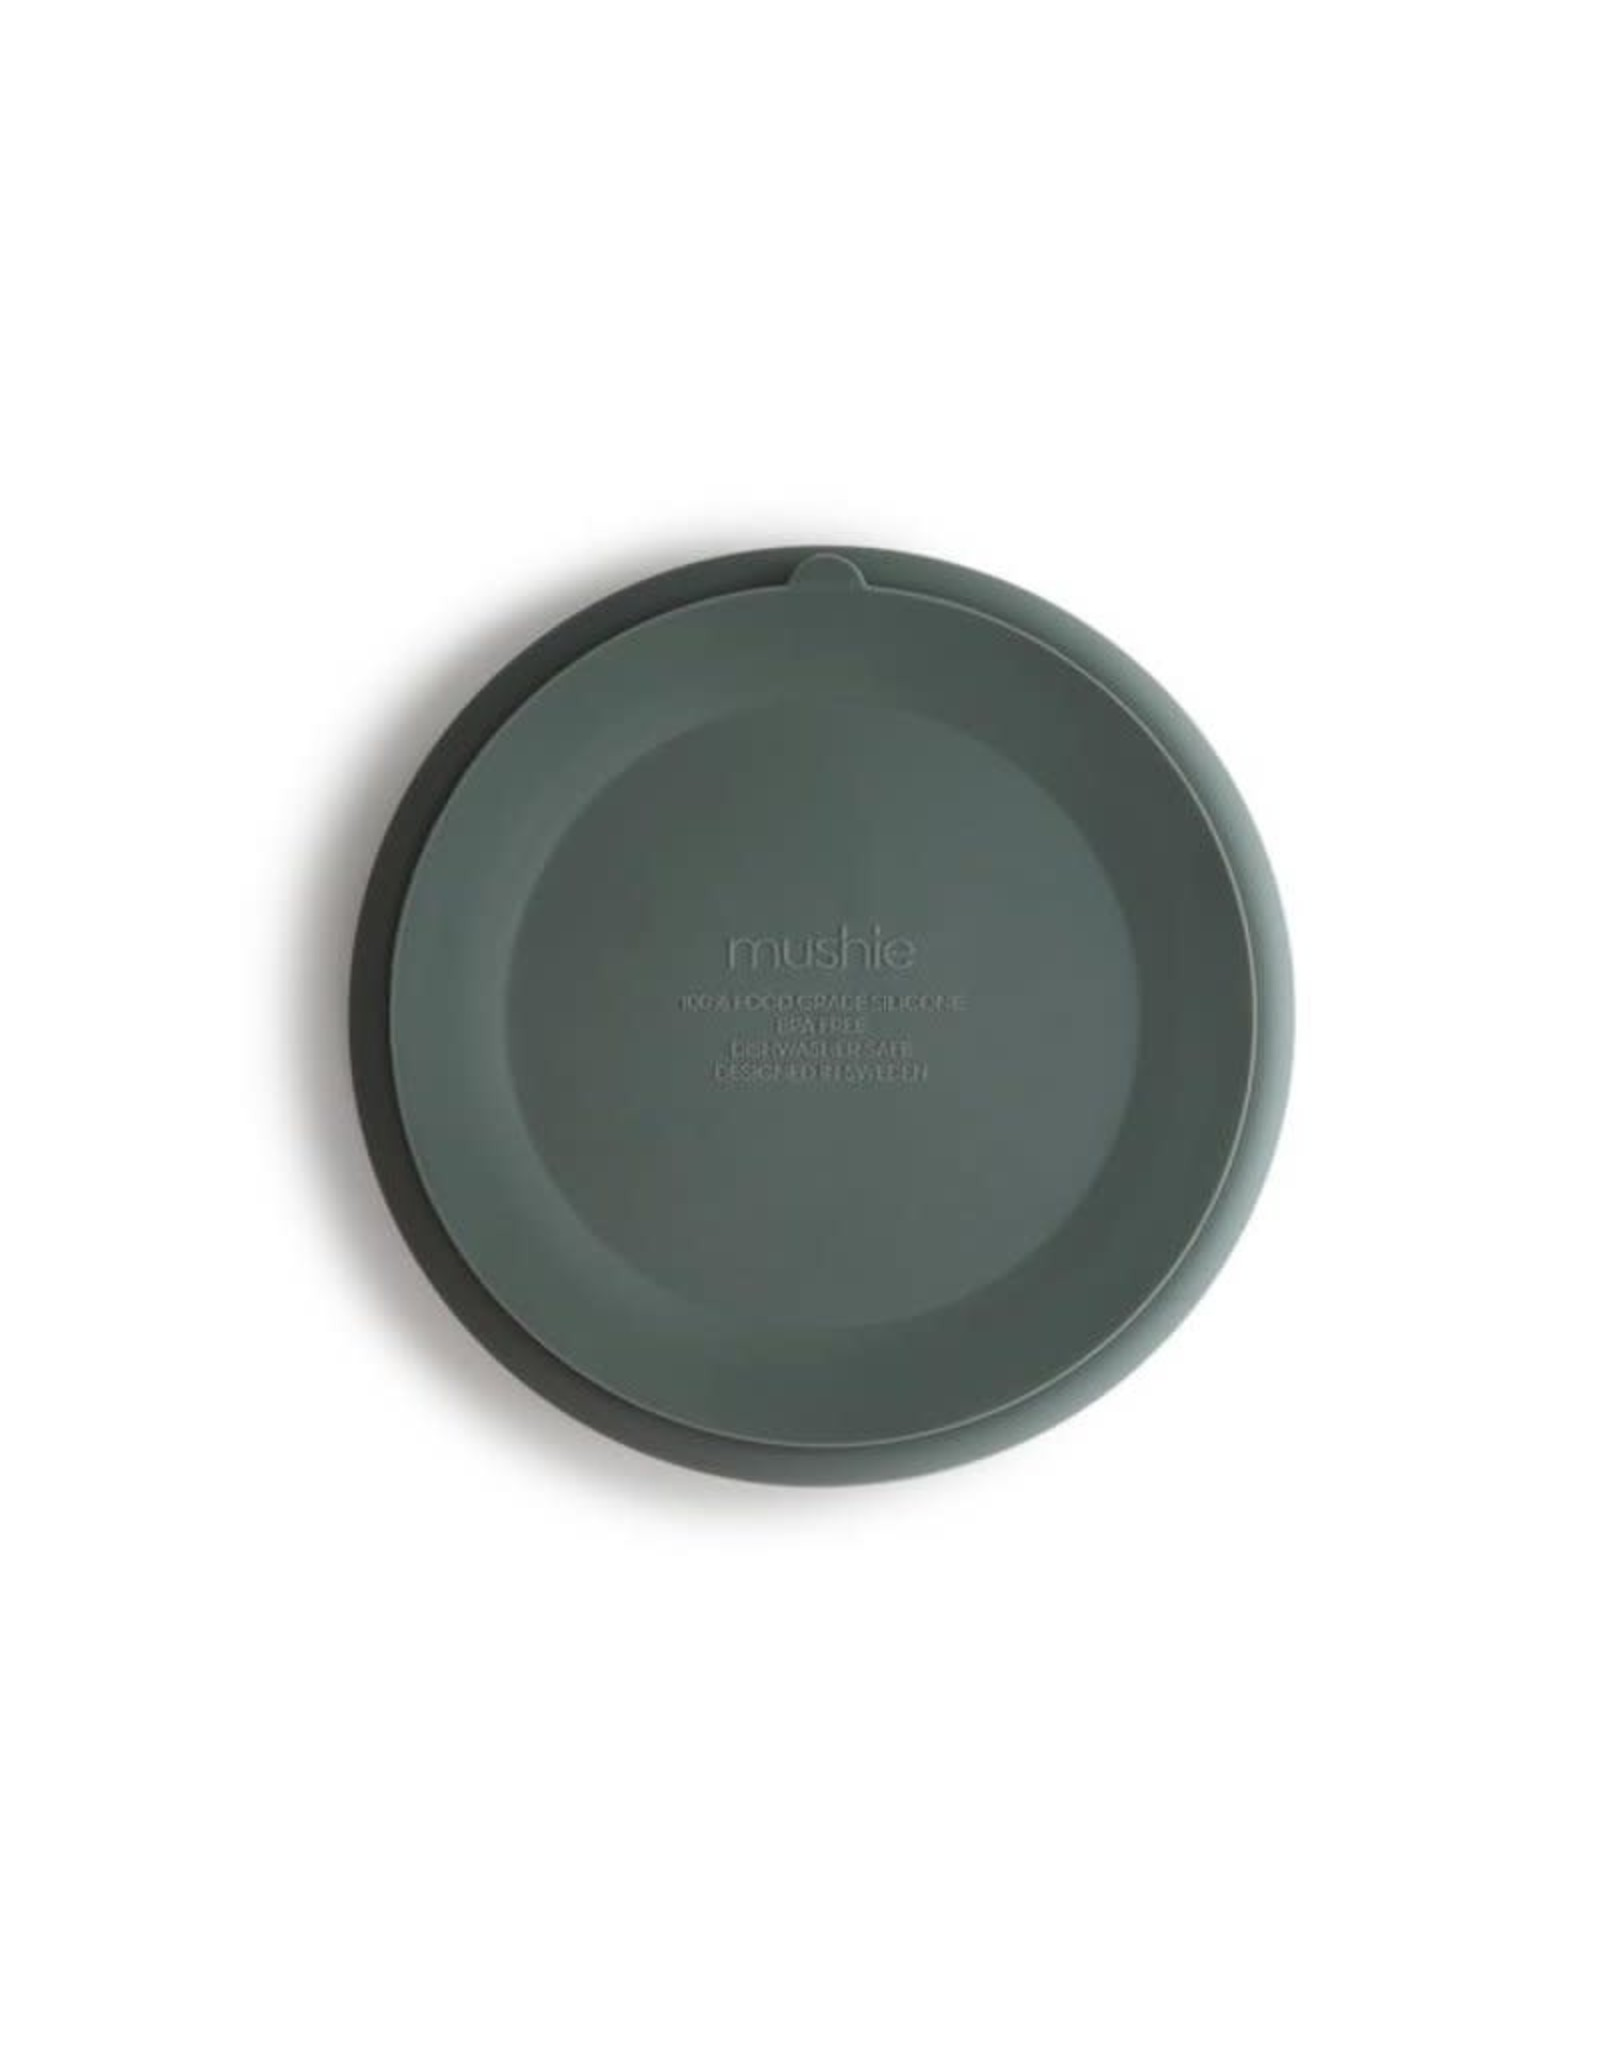 Mushie Silicone antislip plate - Dried Thyme